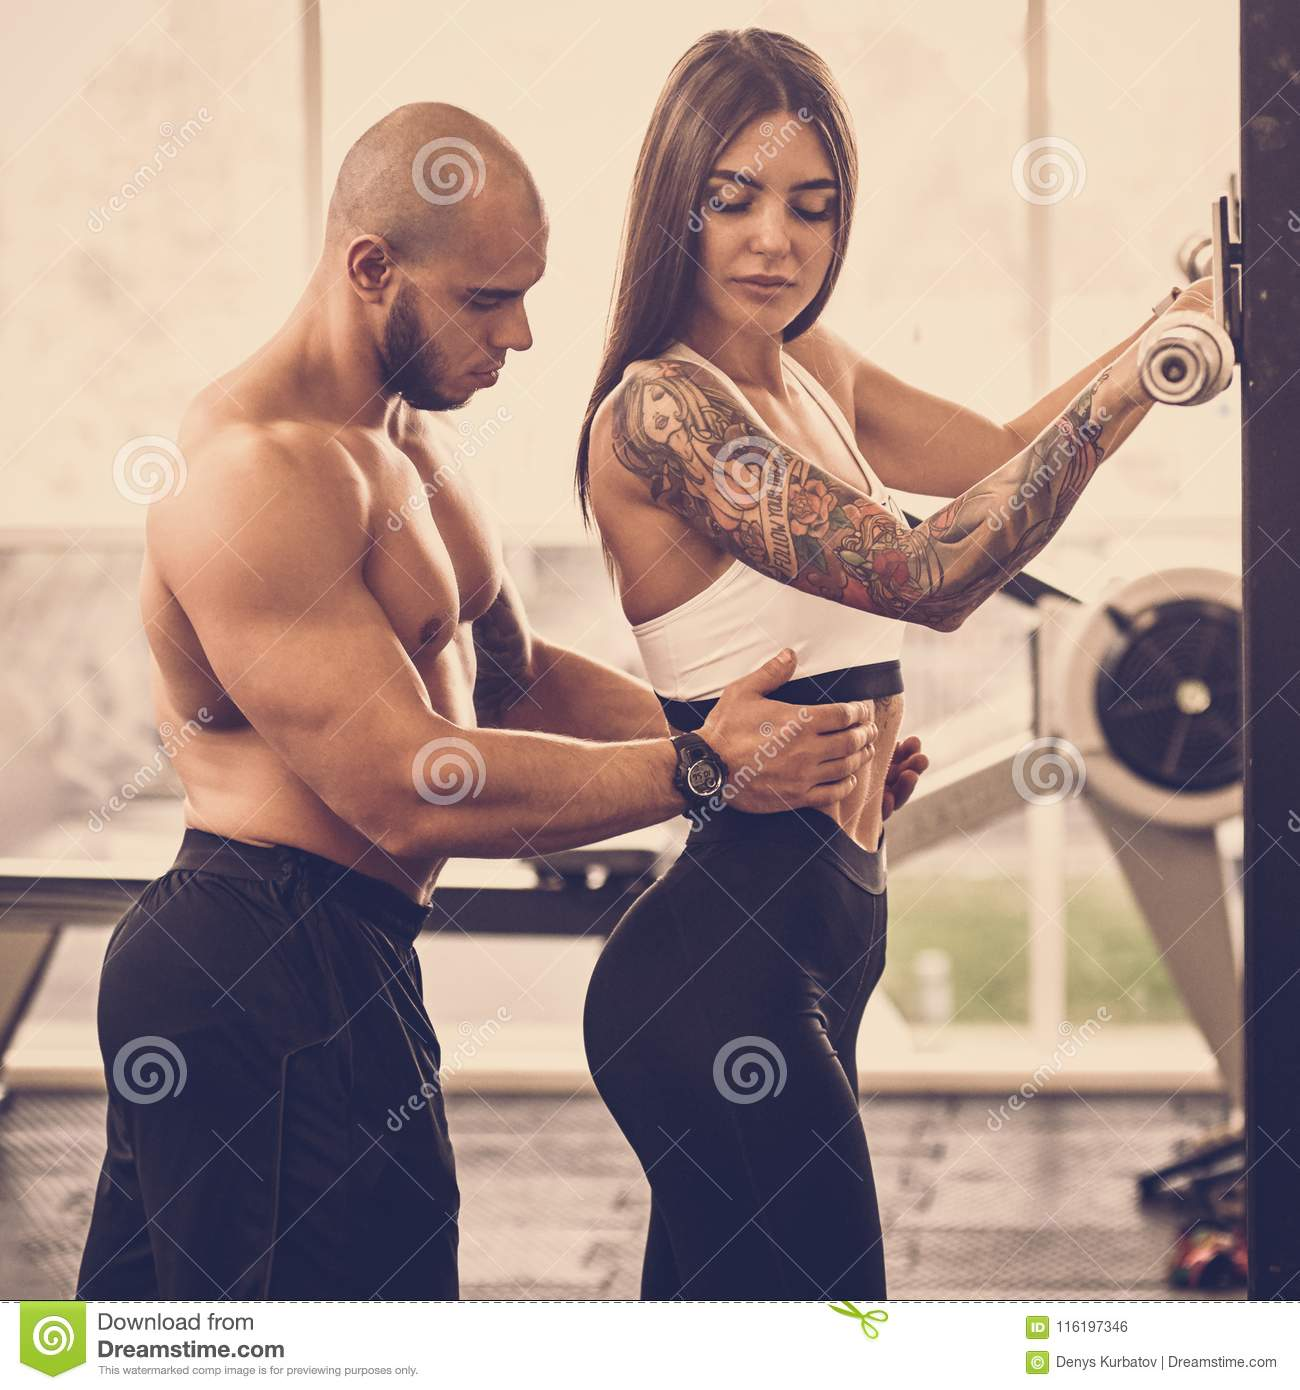 Exercising With Personal Trainer Stock Photo - Image of ...